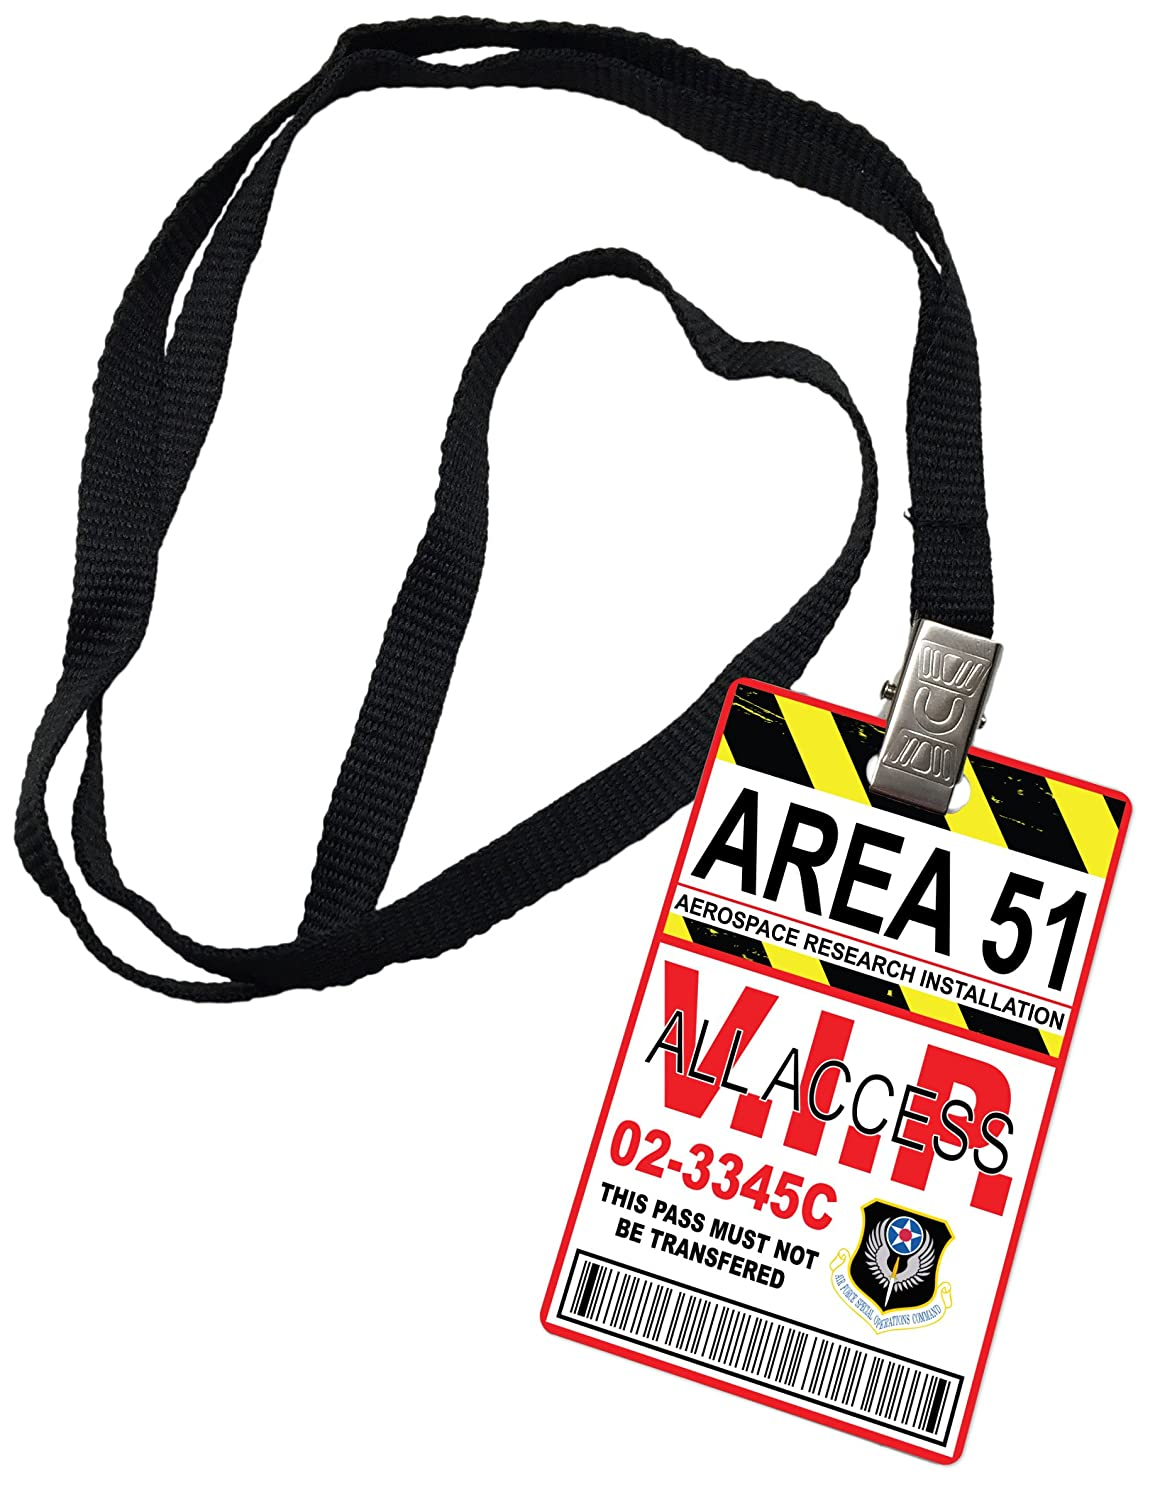 Area 51 All Access Novelty ID Badge Prop Costume